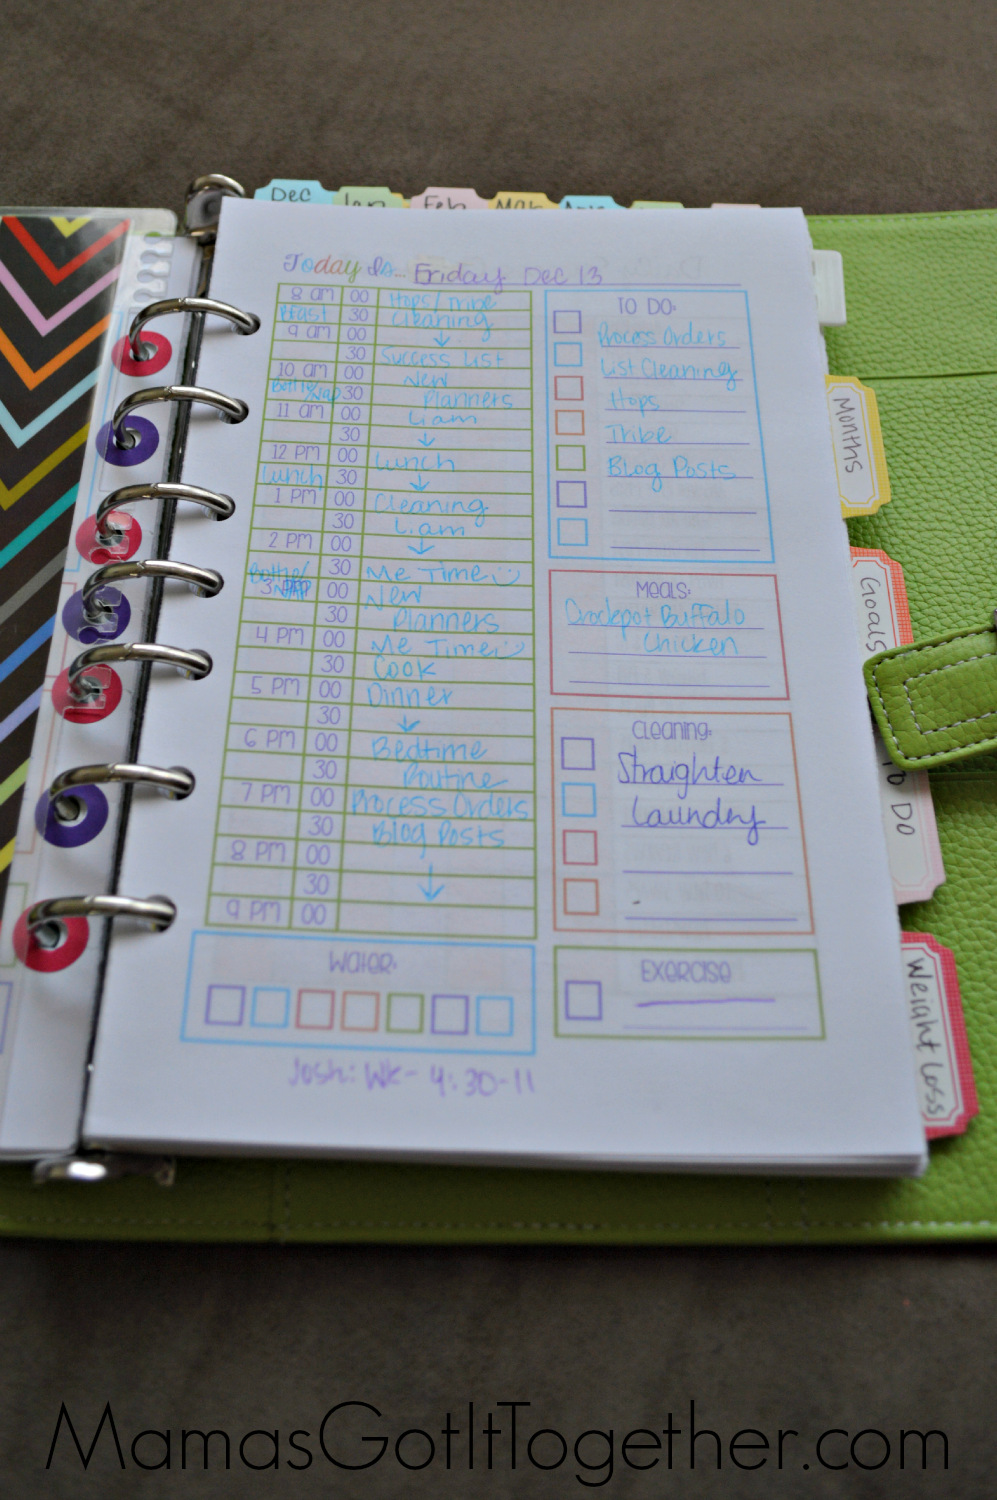 Organized Calendar Planner : My personal planner organization tour mama s got it